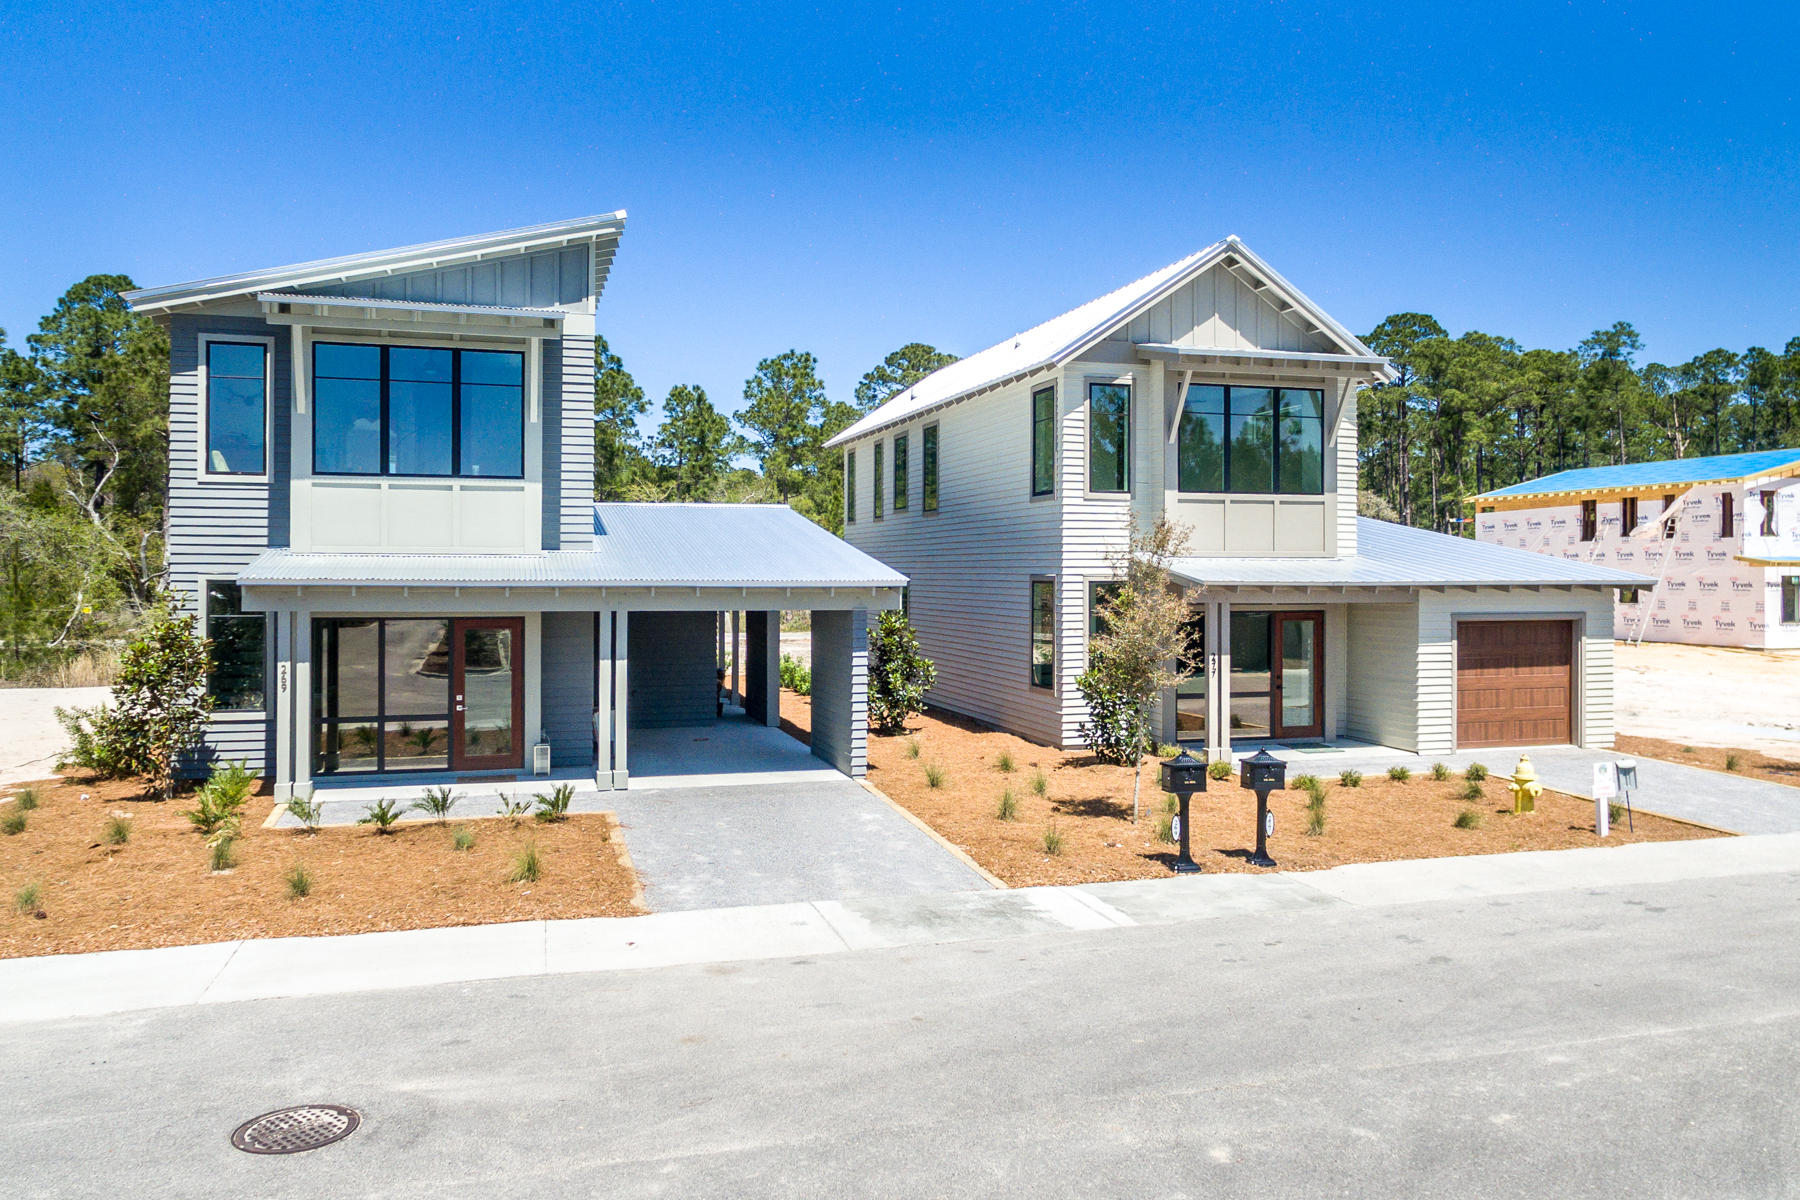 New floorpan with master on first level. You've discovered SOUTH WALTON'S NEXT GENERATION HOMES! Brand-new homes in on Historic Point Washington, thoughtfully designed for today's families. Enjoy the privileges of living the good life as a local. The State Park & school are steps away, and public boat launch just a few blocks. Open floor plan and outdoor ''rooms'' are part of the way you want to live NOW. Select your fixtures and colors, and enjoy a new home built your way. High quality construction with storm-rated windows. Ask about our Closing Cost assistance. Photos are of similar model. This home is to-be-built.